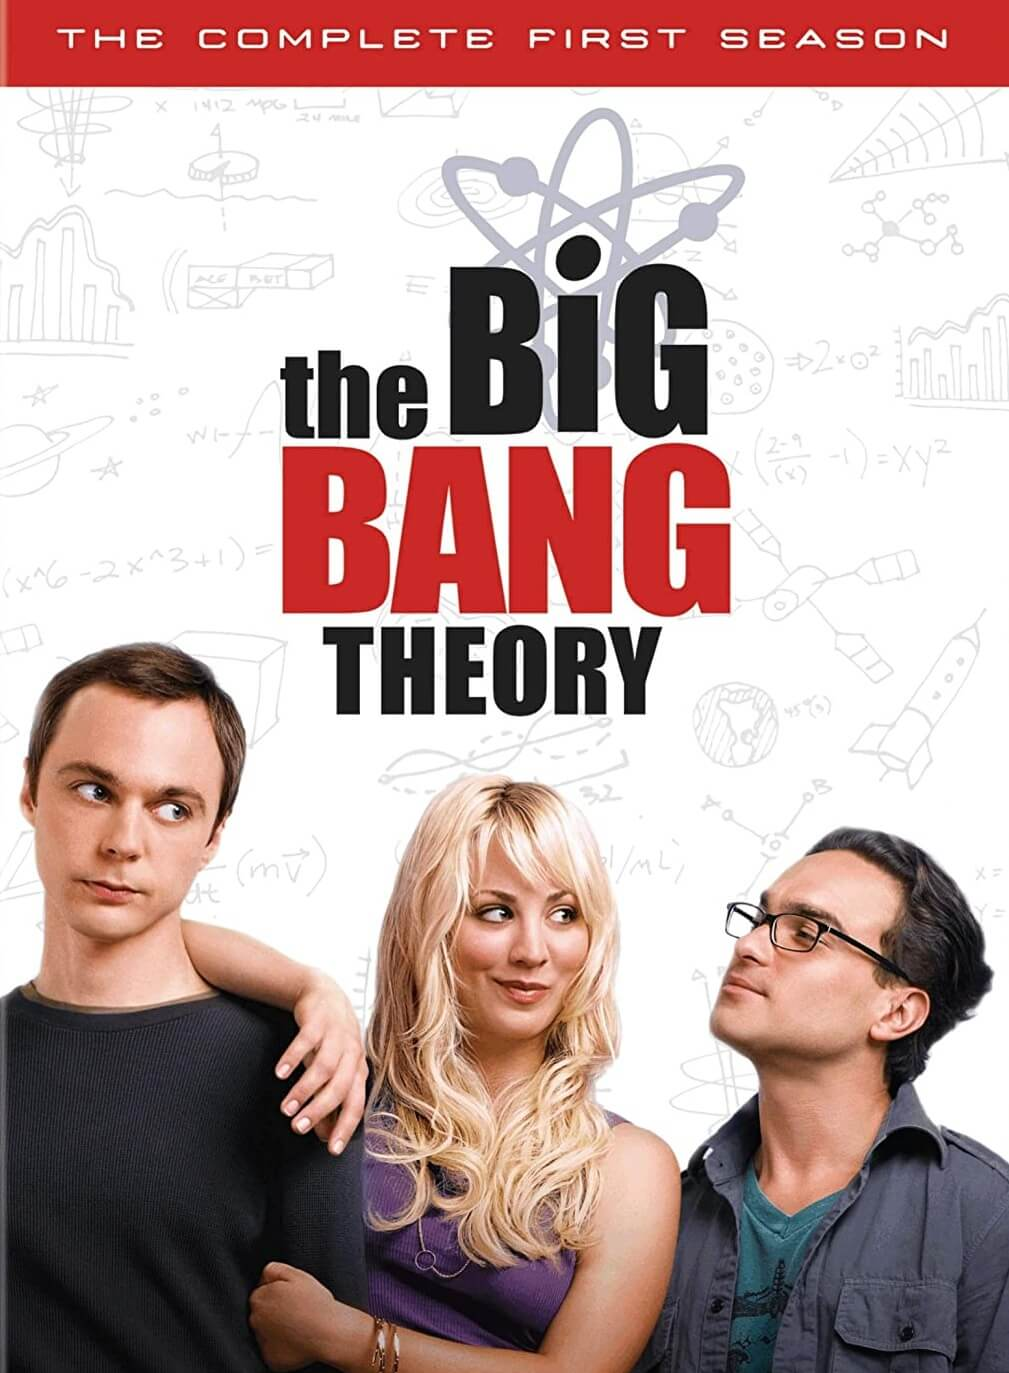 The Big Bang Theory S01 E05